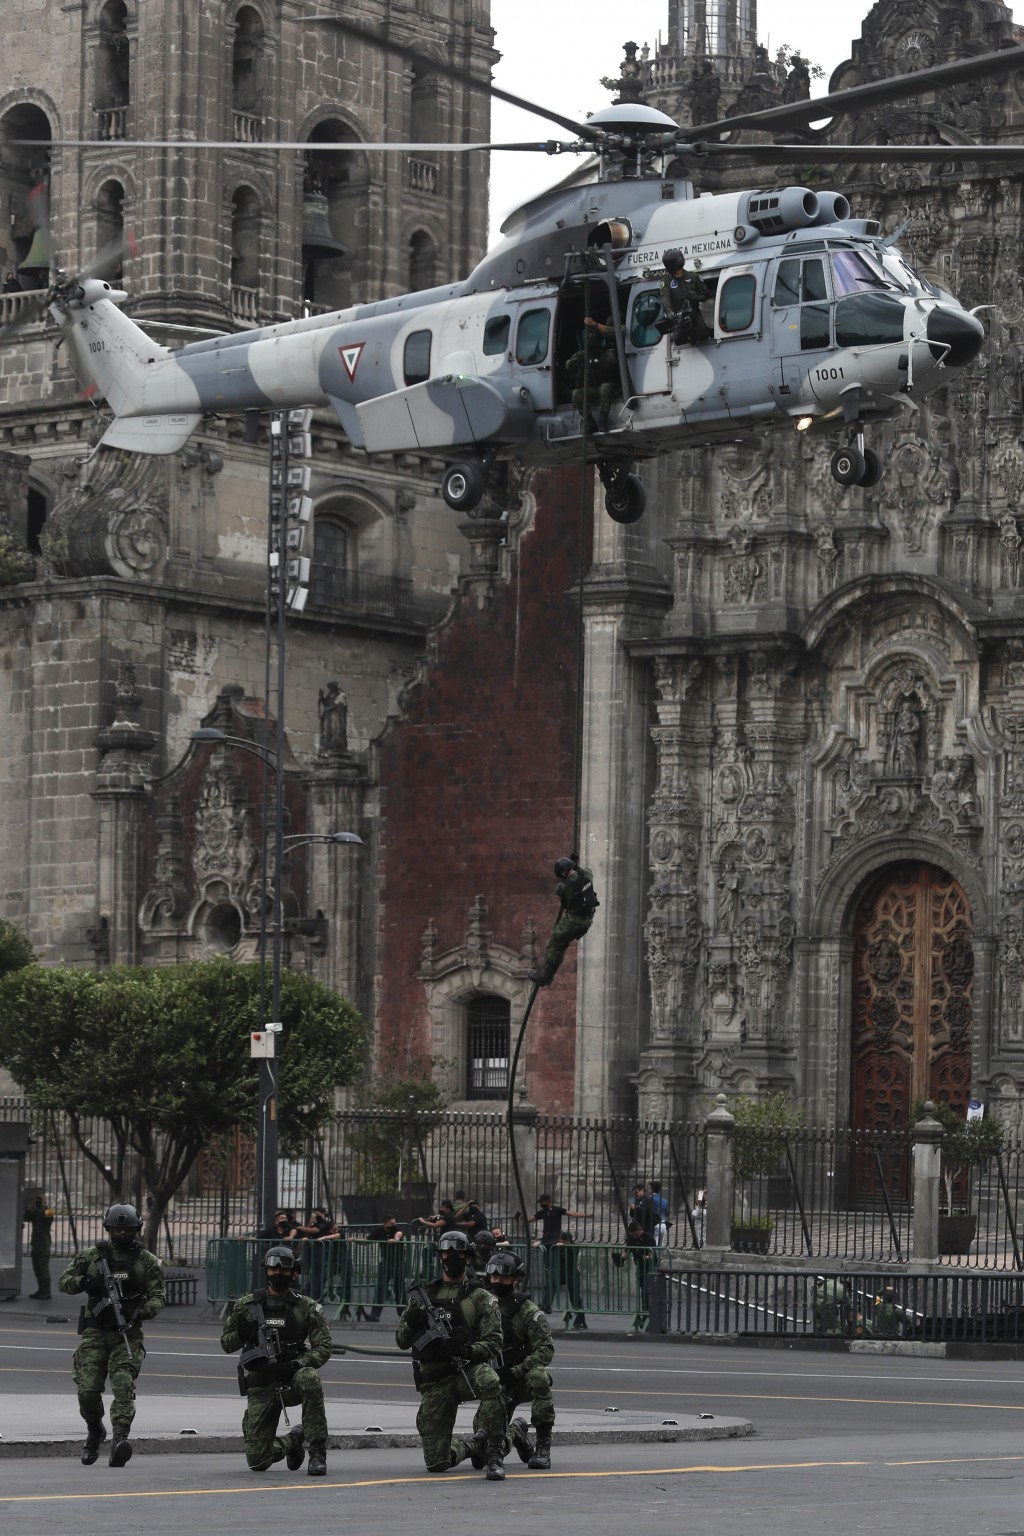 A paratrooper repels from a helicopter hovering over Mexico City's main square, known as the Zocalo, during the annual Independence Day military parad...